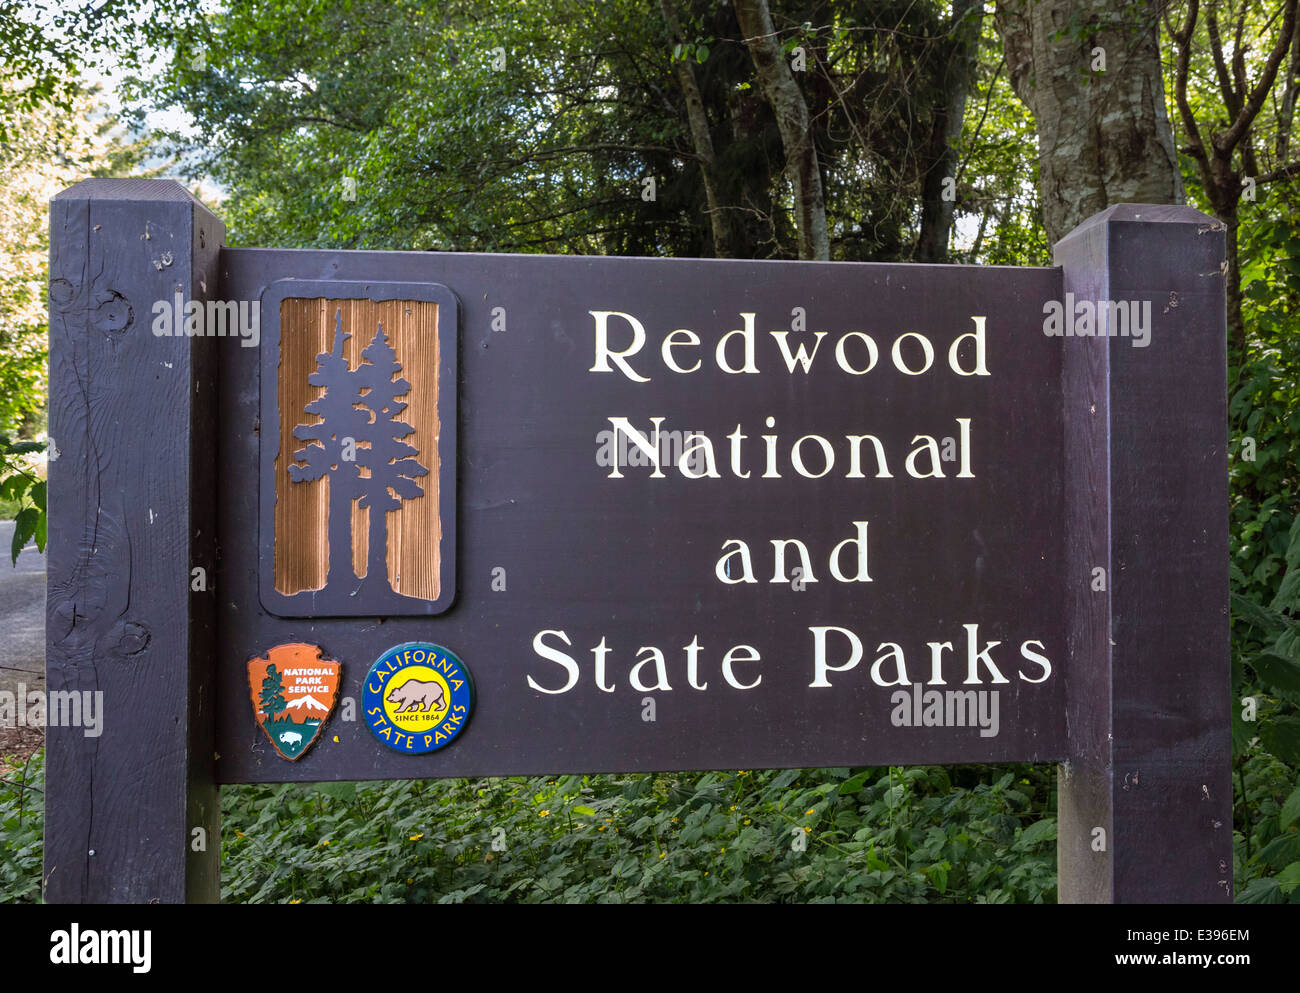 Entrance sign to Redwood National and State Parks, Northern California, USA - Stock Image